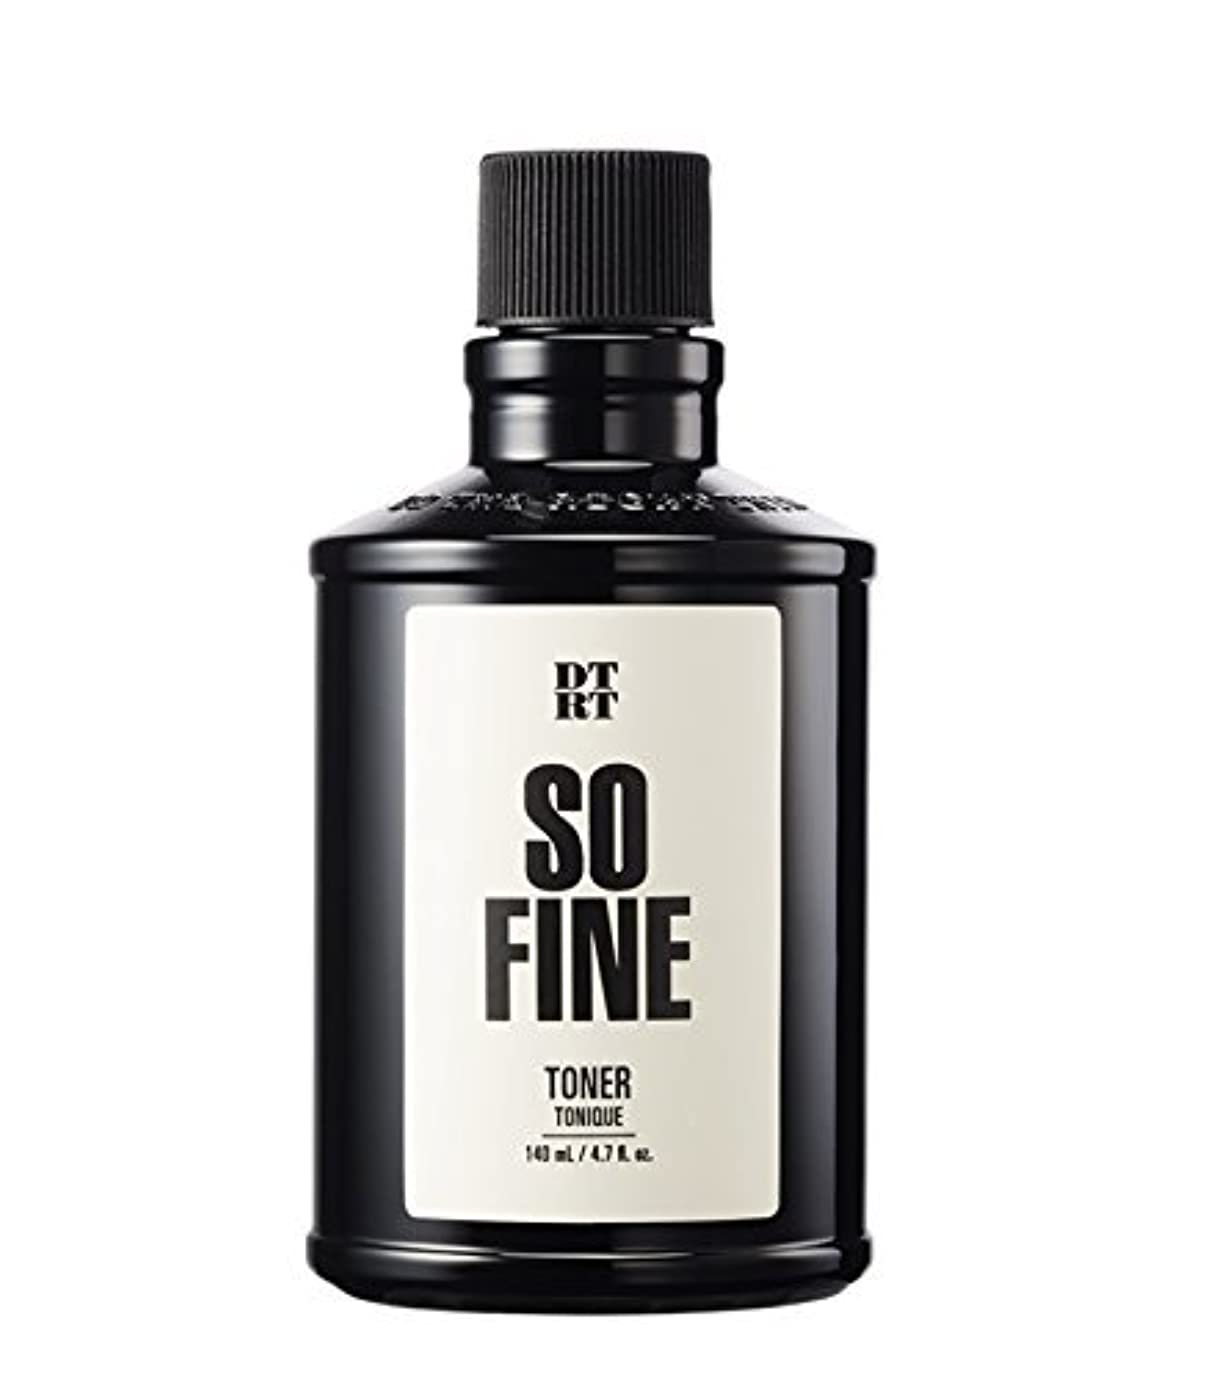 DTRT トナーソファイン140ml For men / DTRT So Fine Toner / Korea Cosmetic